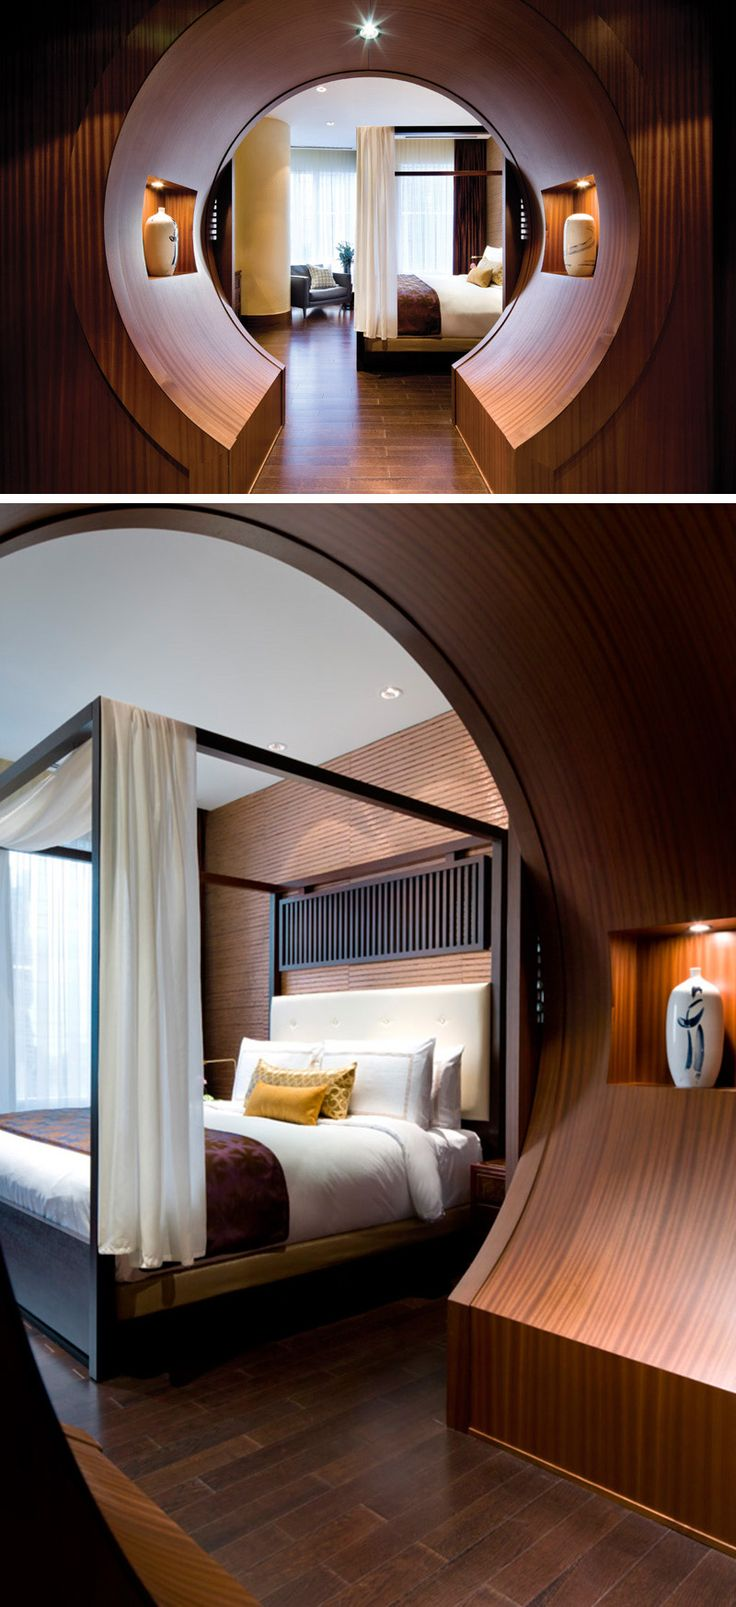 best 25 hotel suites ideas on pinterest hotels with suites you enter the bedroom of this hotel suite through a moon gate